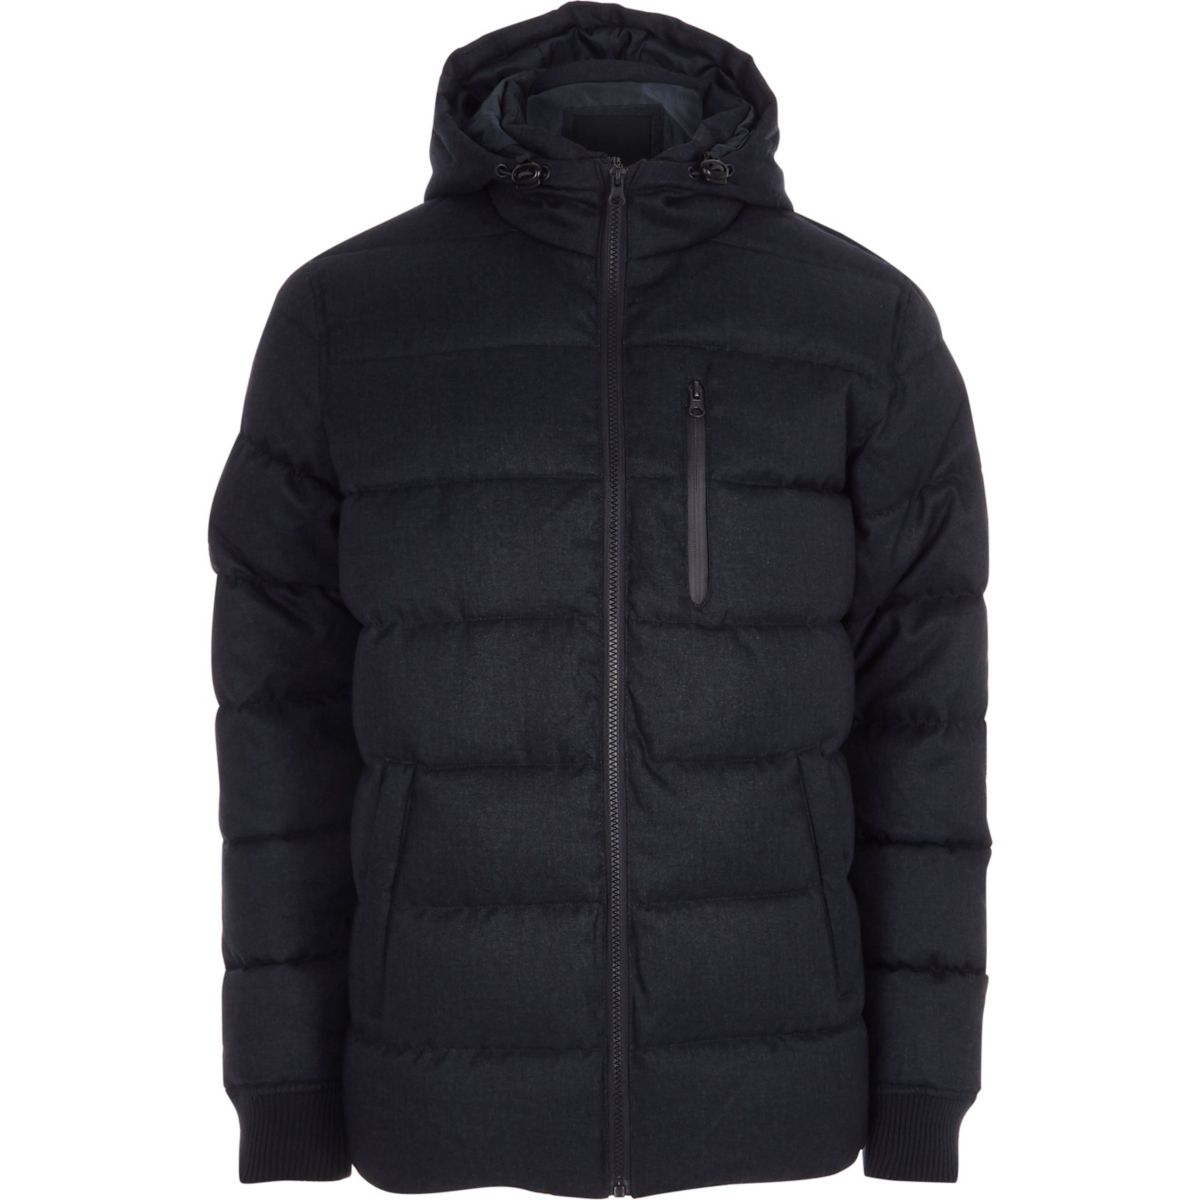 Big and Tall navy padded hooded jacket